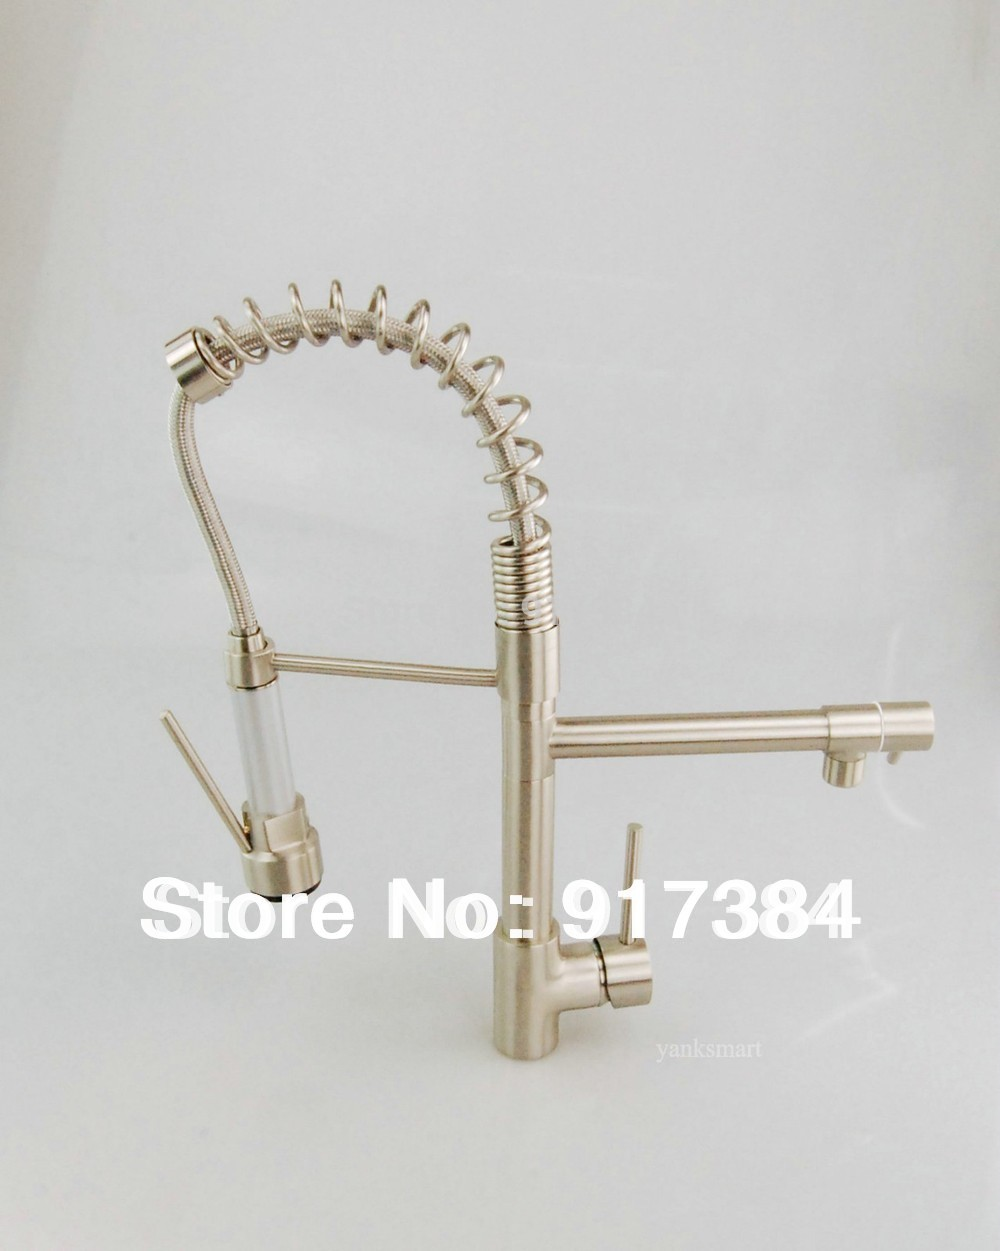 New and On Sale Nickel Brushed Double Water Spout Pull Out Kitchen Sink Mixer Tap Faucet JN8525-3(China (Mainland))